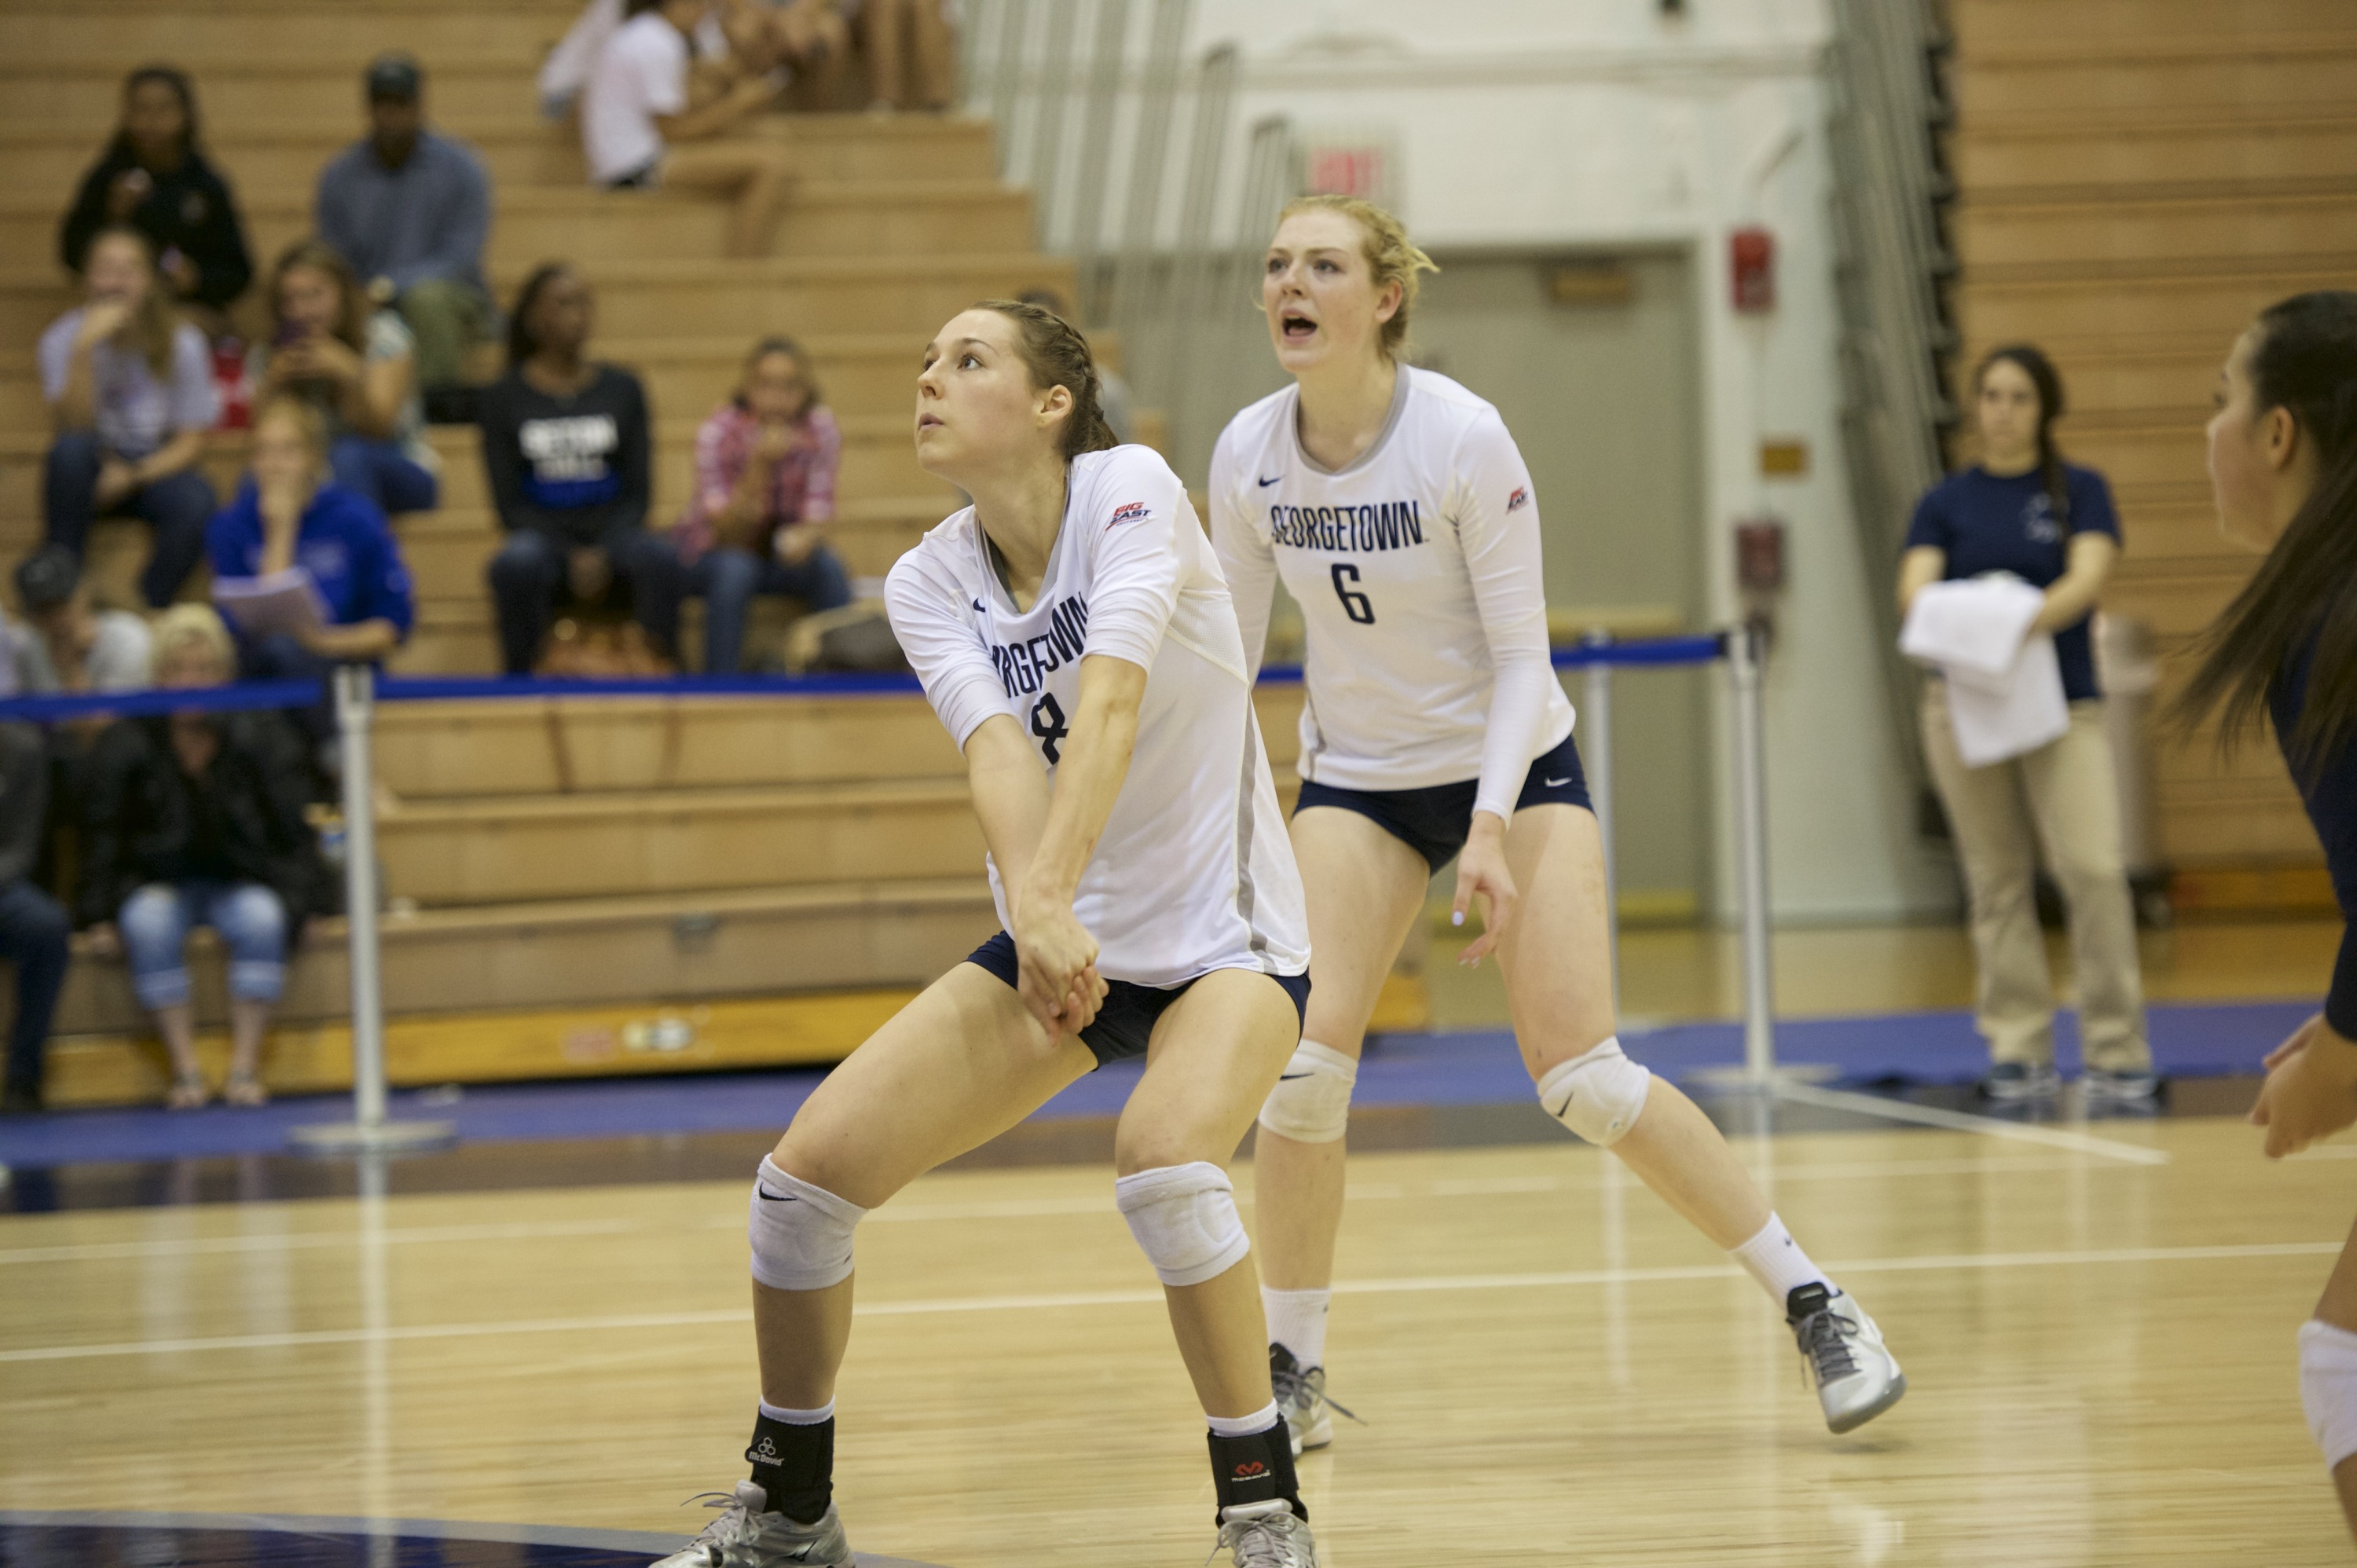 Senior Lauren Saar finished with 19 kills and 20 digs in her final match in a Georgetown uniform.